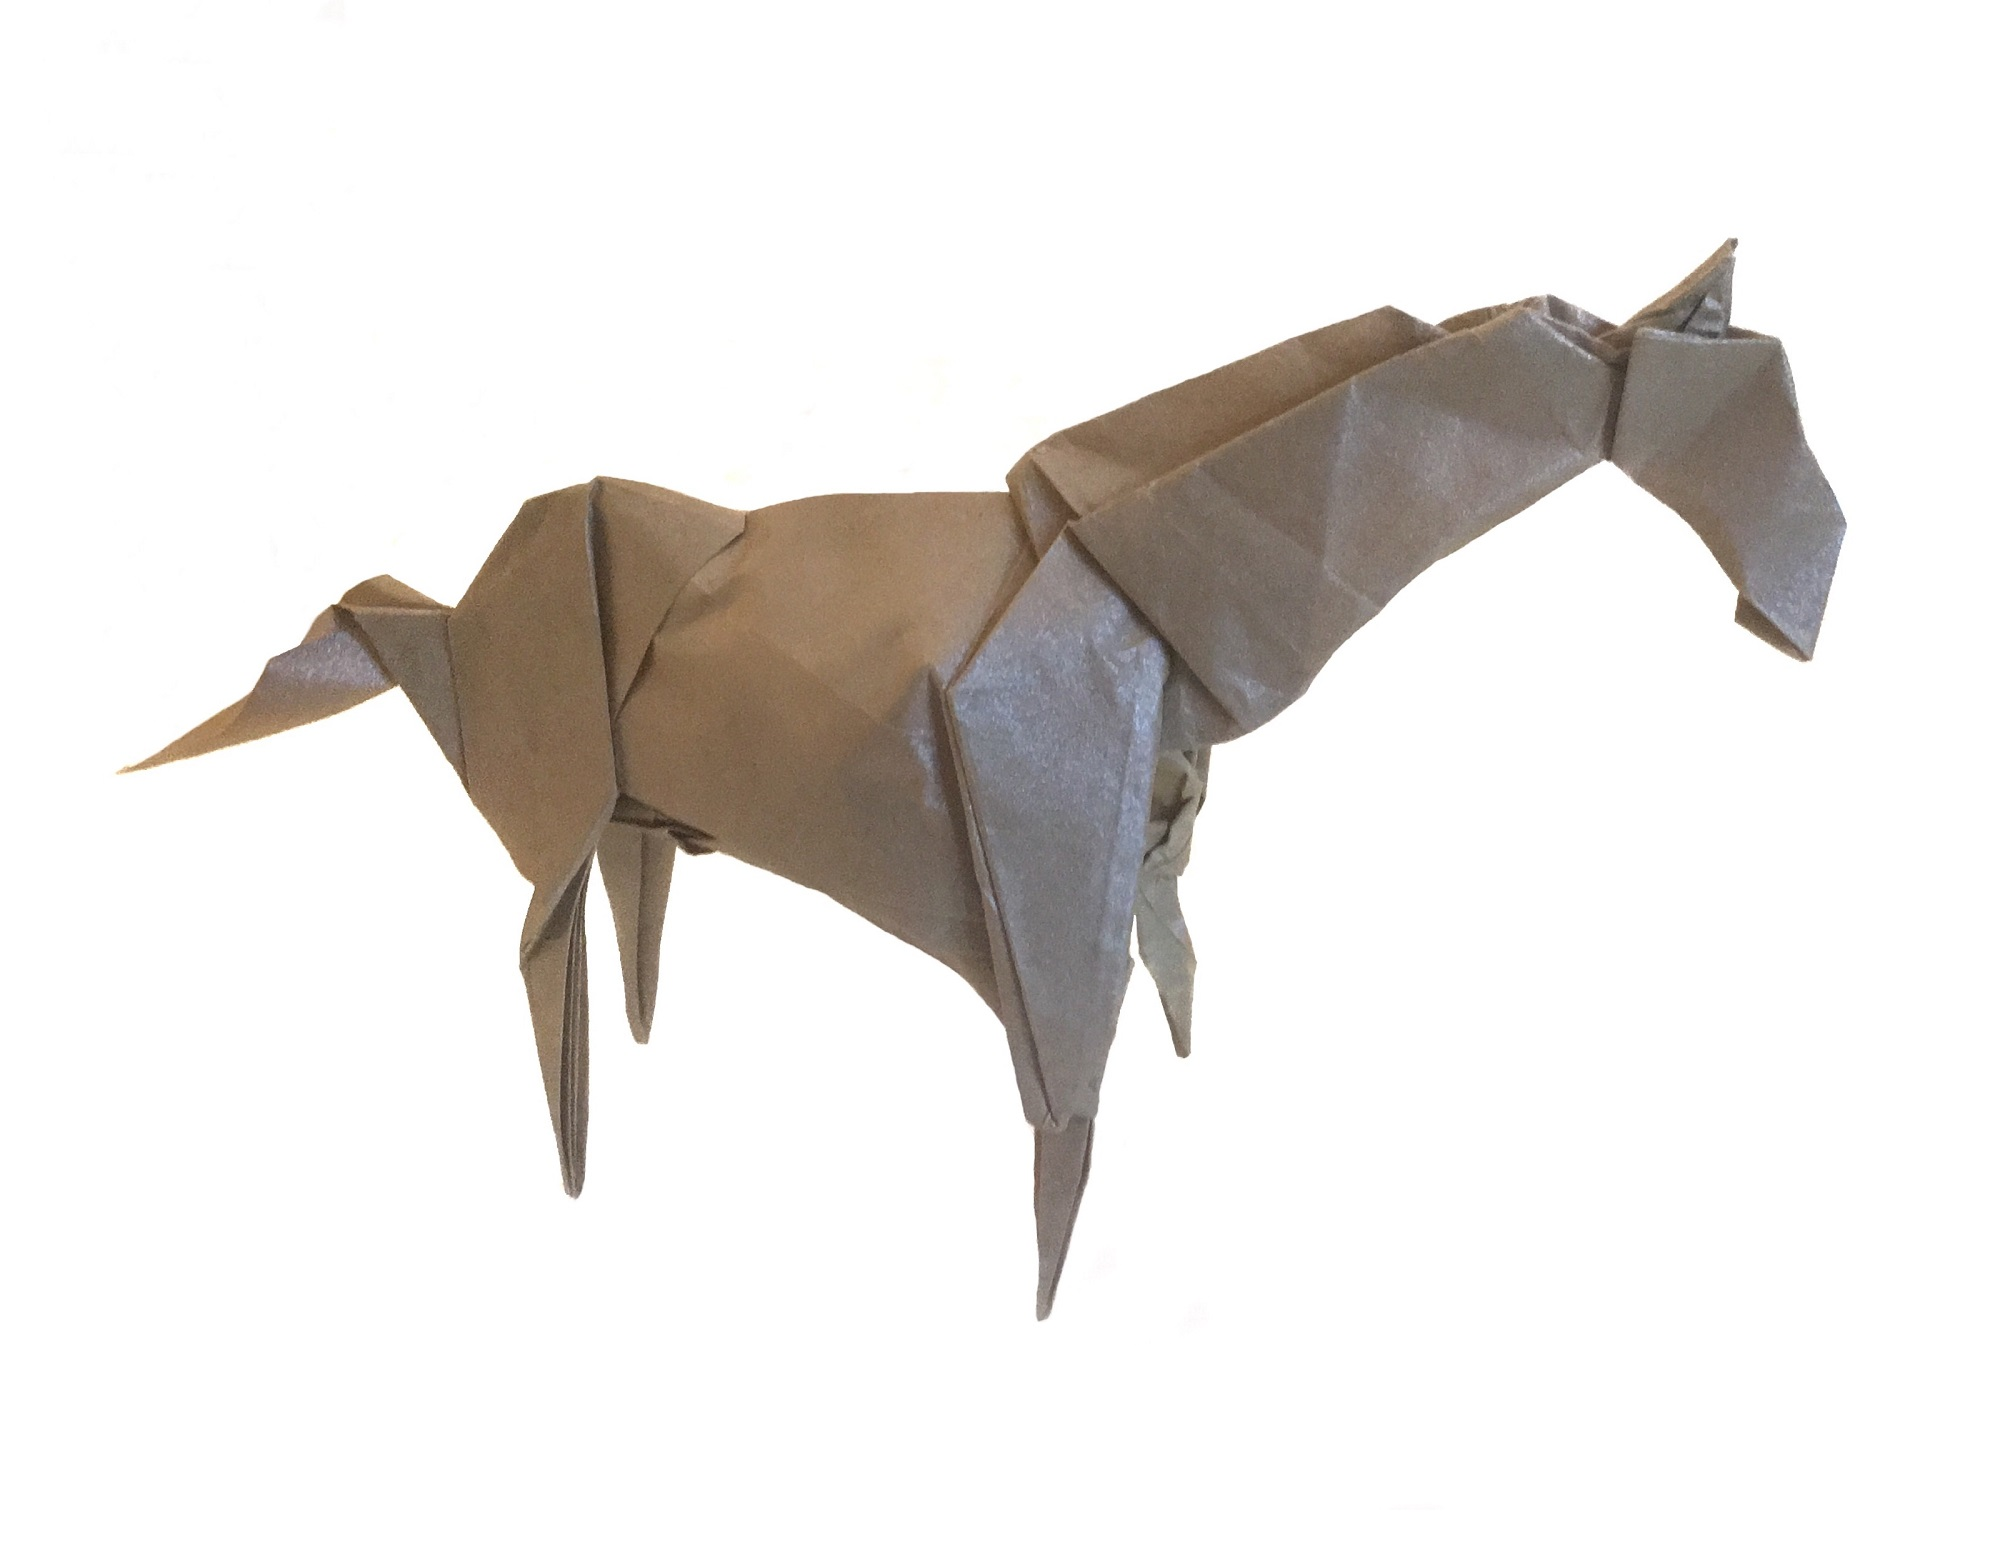 How to Make an Easy Origami Horse | 1550x2000